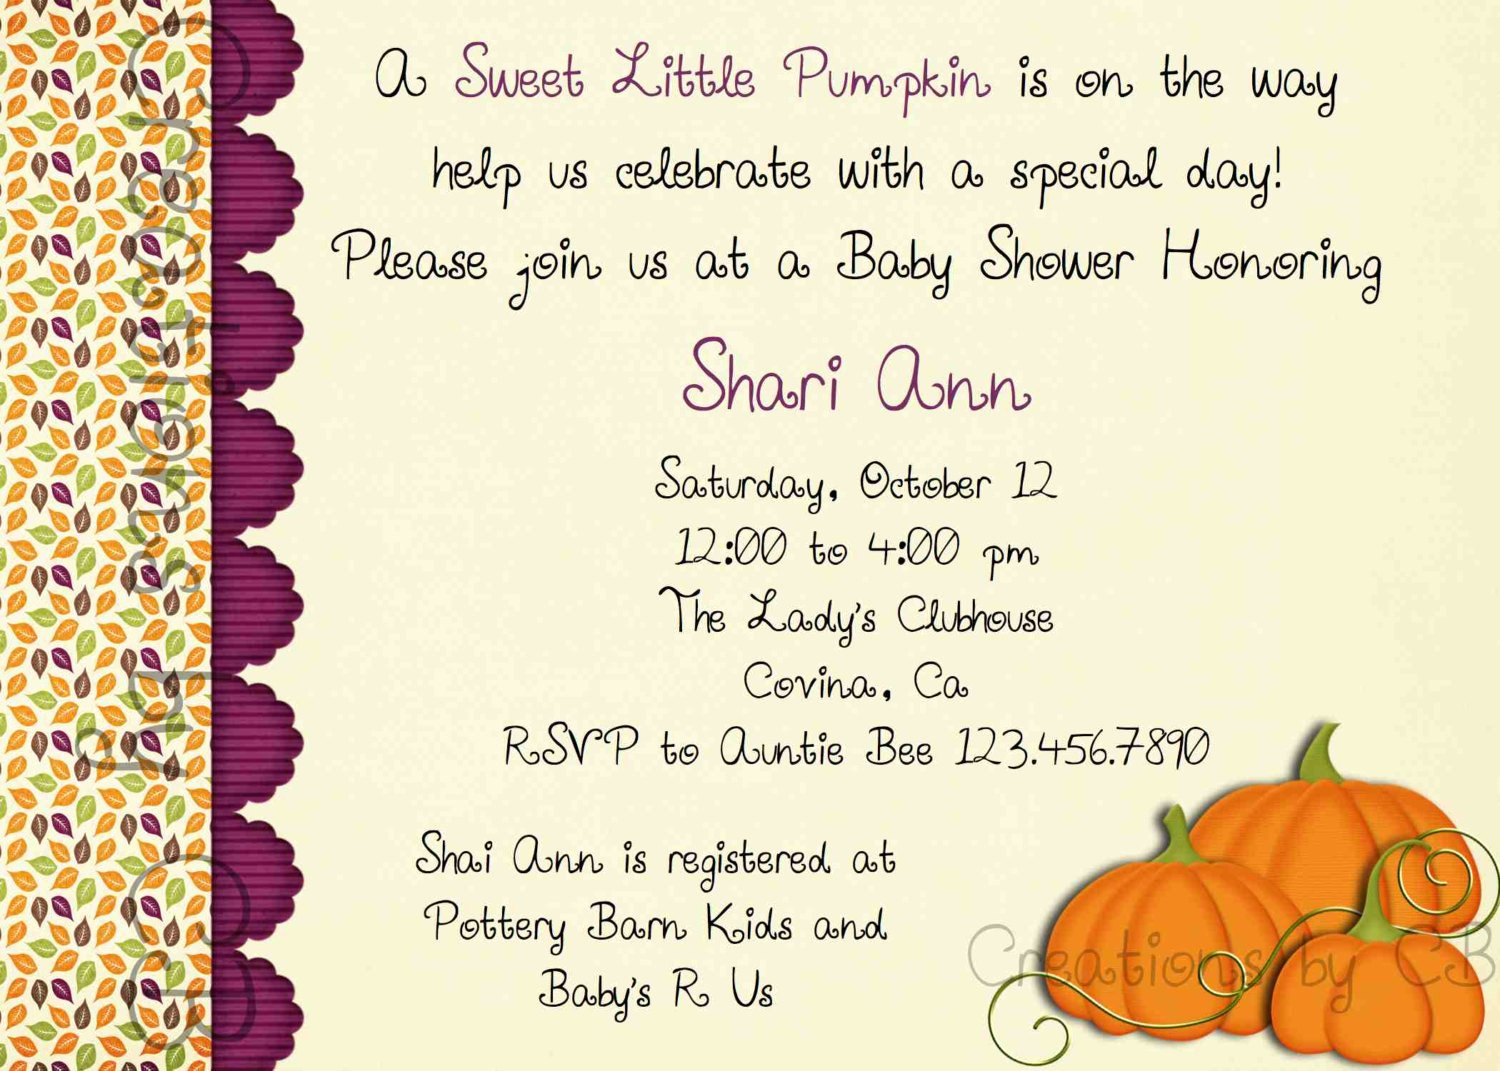 Potluck Party Invitations Wording Beautiful Wording for Thanksgiving Invitation Dinner Rent